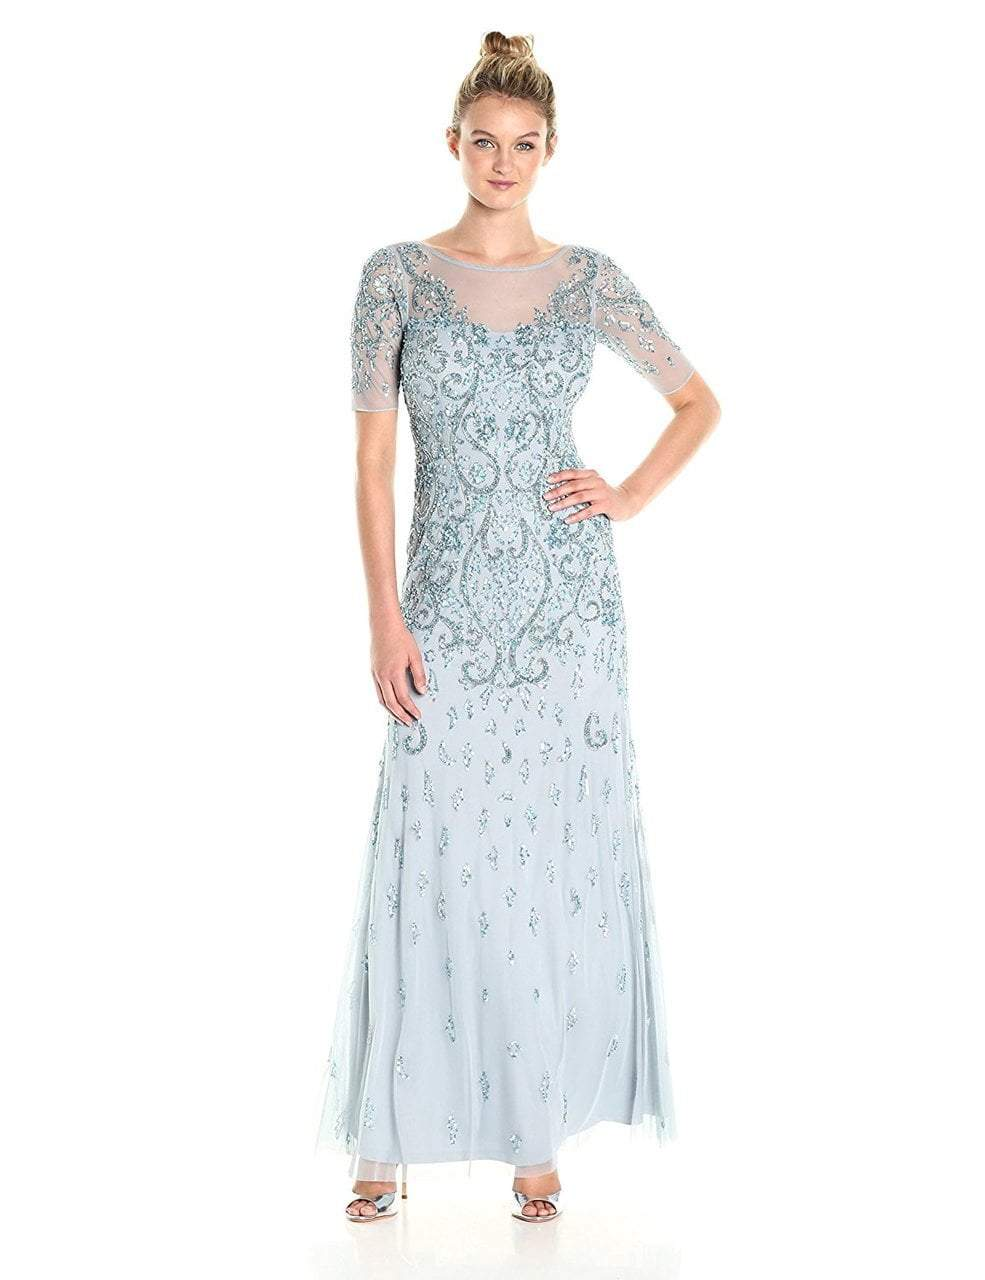 Adrianna Papell - AP1E201314 Quarter Sleeve Embellished Evening Gown in Blue